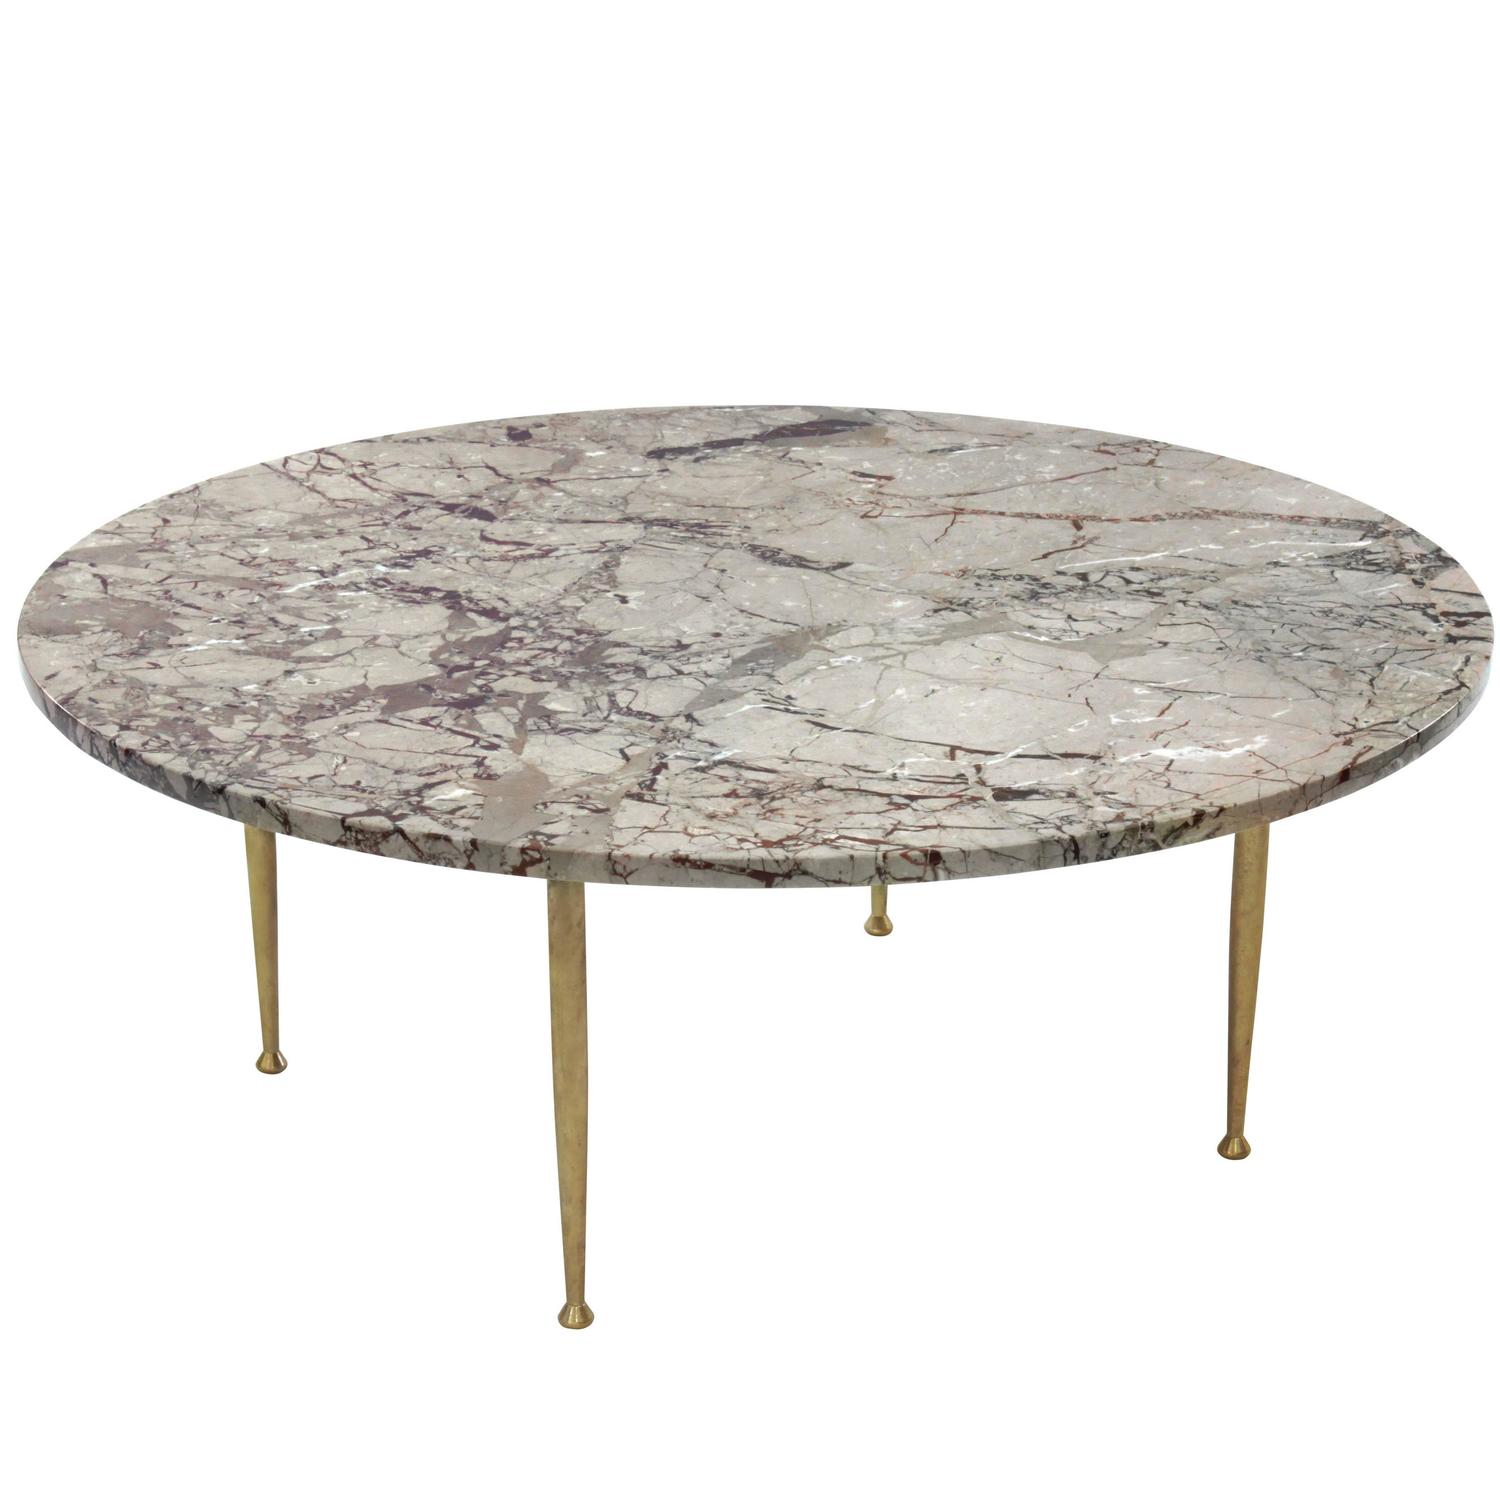 - Elegant Coffee Table In Marble With Brass Legs For Sale At 1stdibs